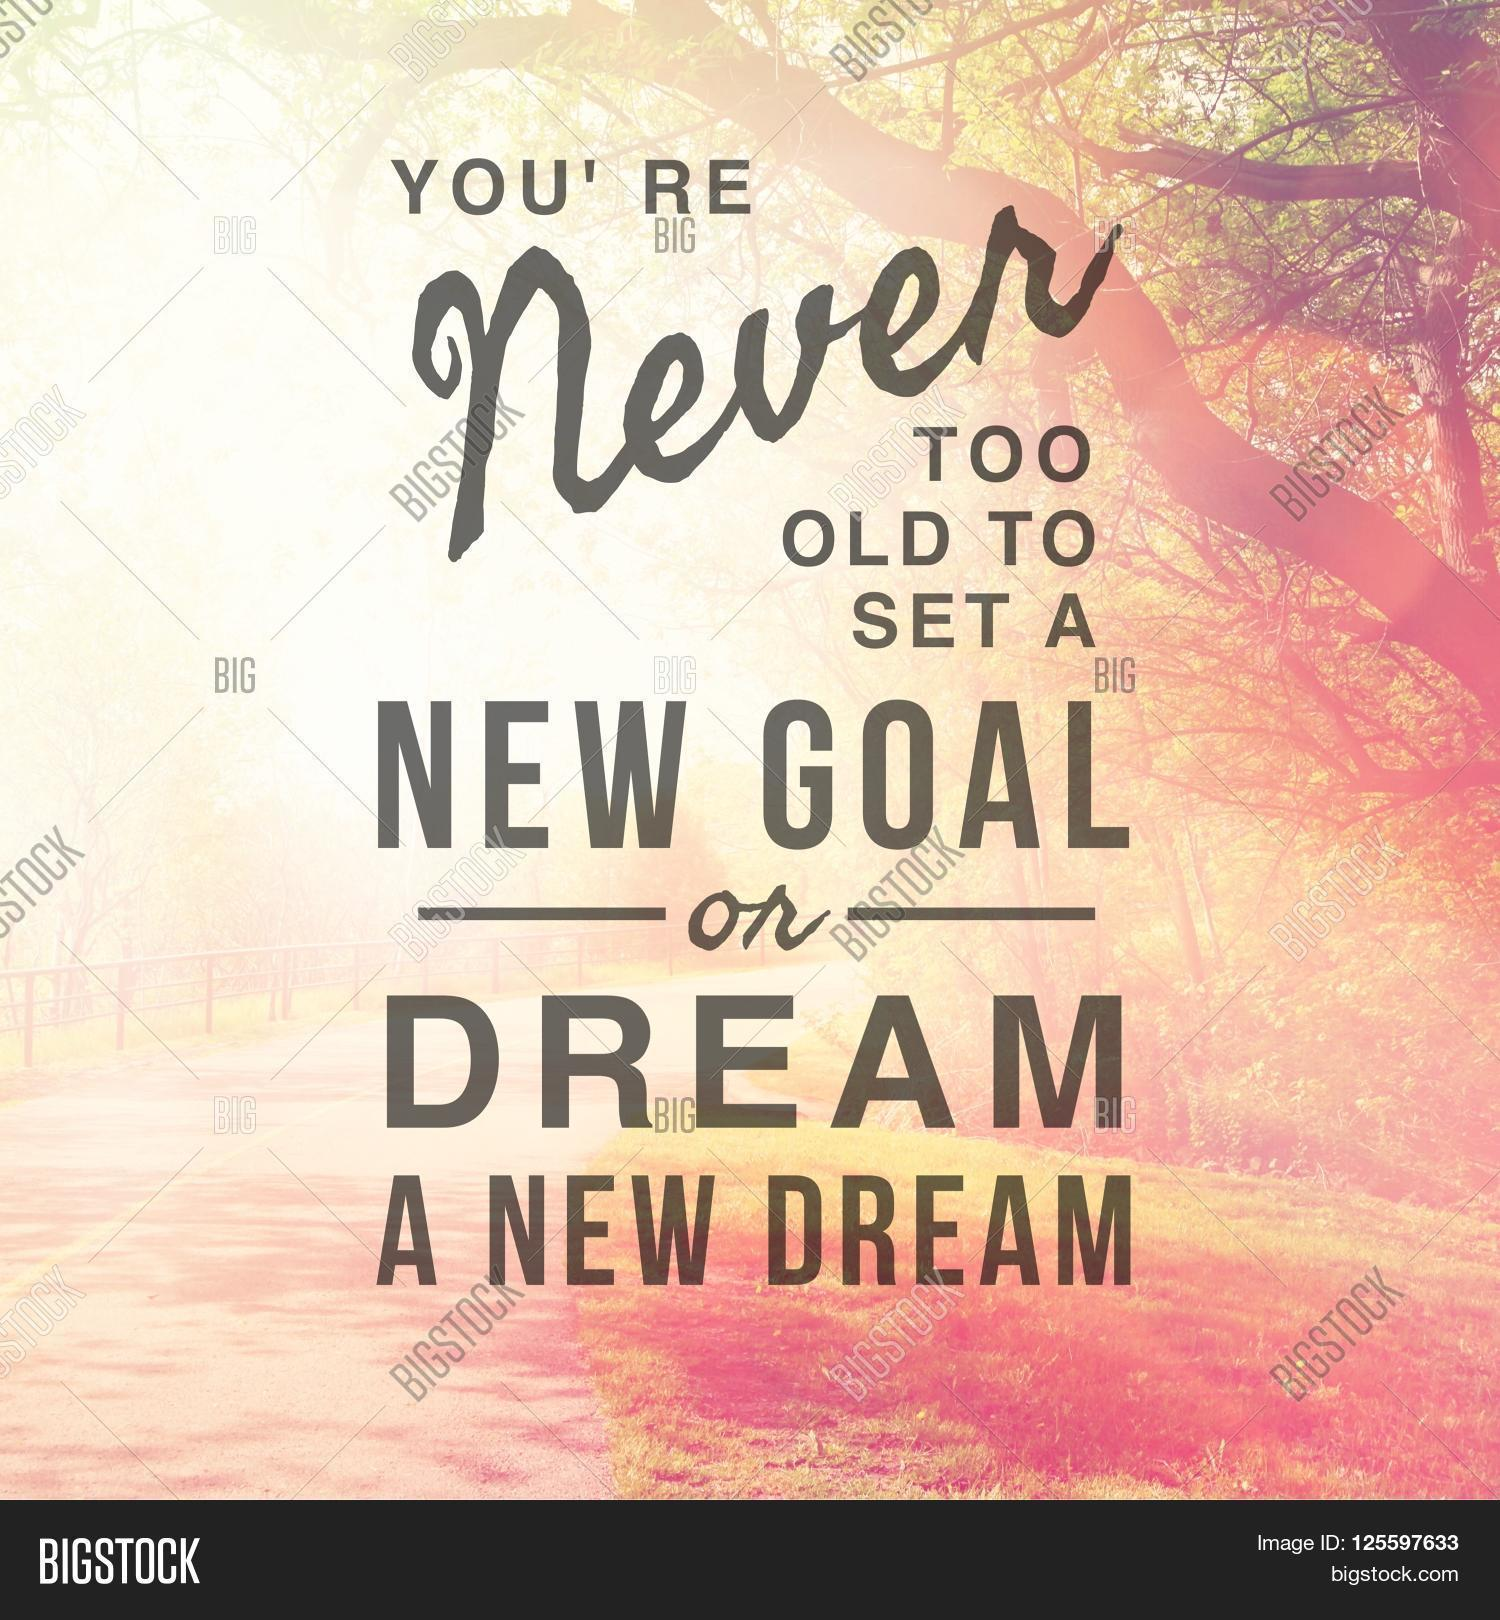 High Quality Inspirational Typographic Quote   Youu0027re Never Too Old To Set A New Goal Or